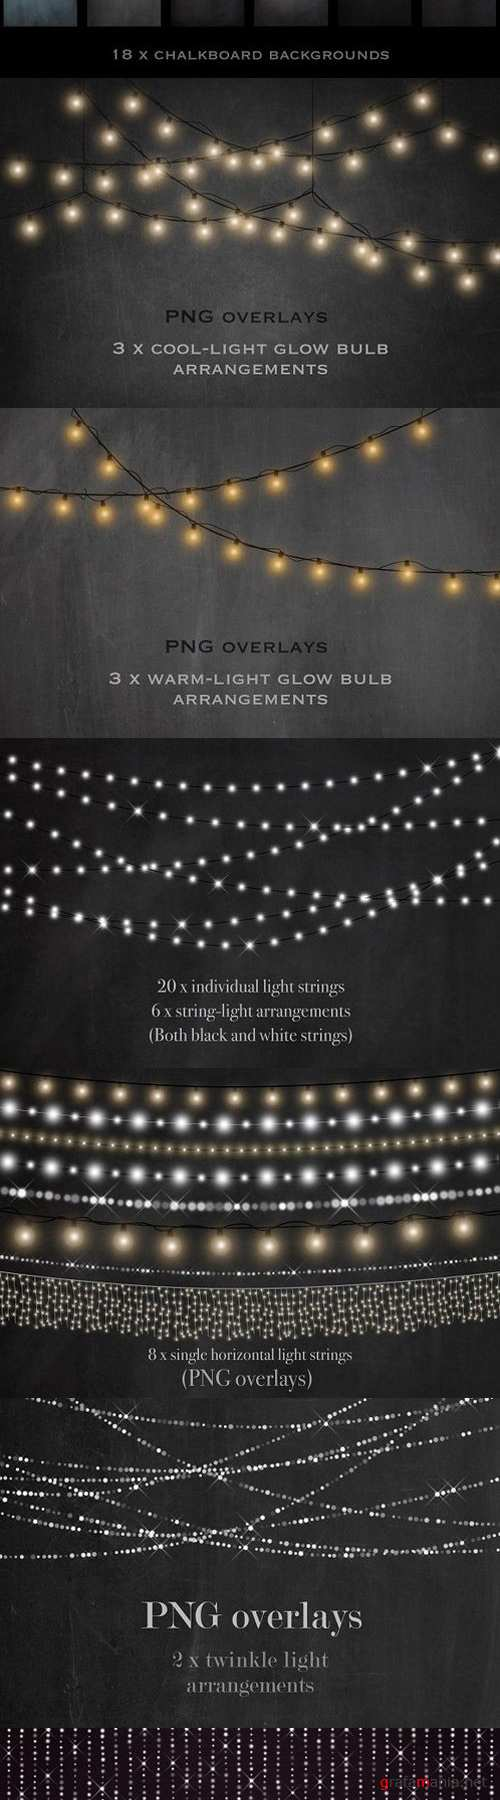 Chalkboards and fairy lights 1482204